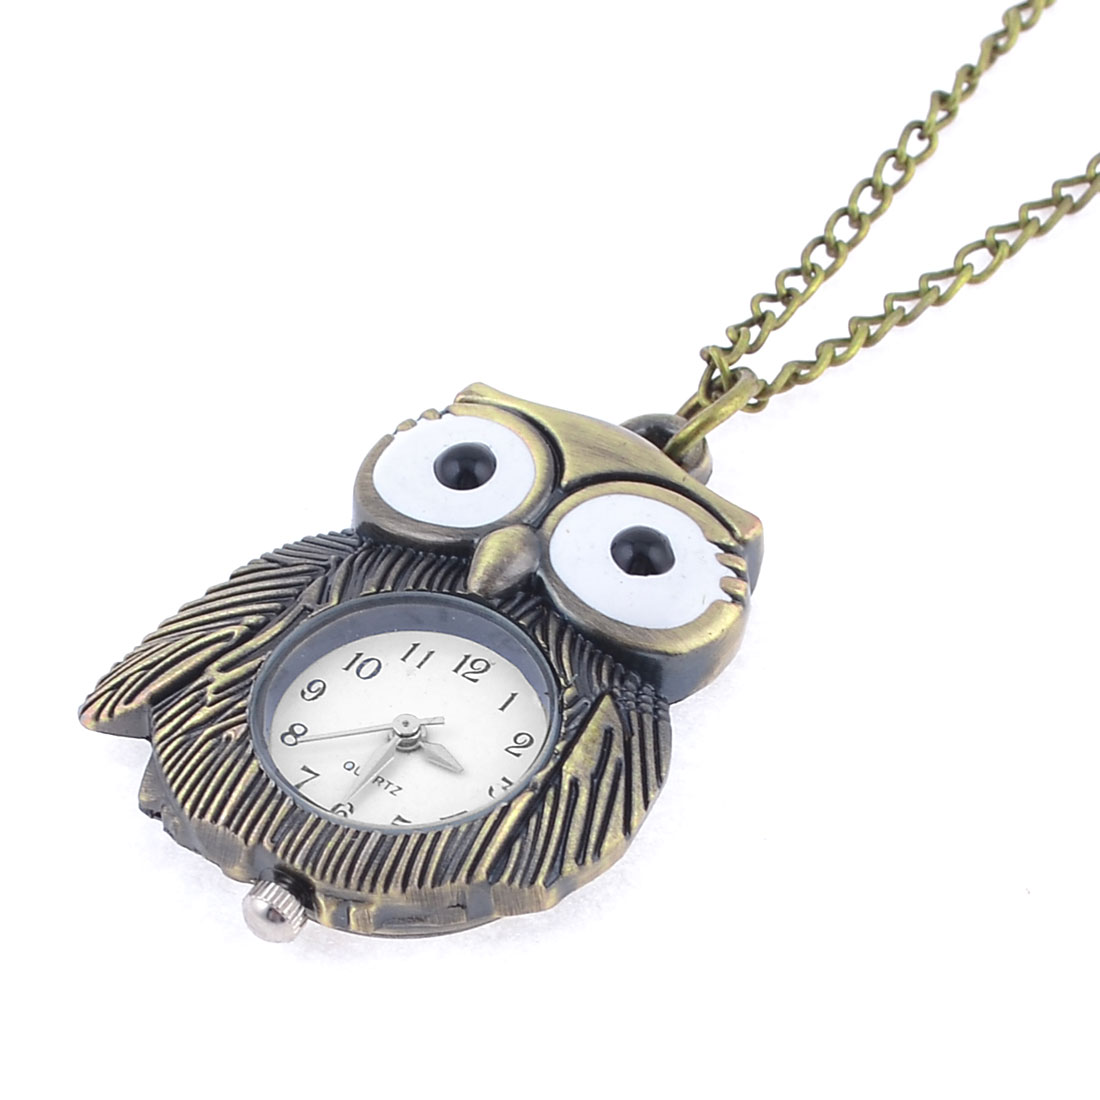 Arabic Number Display Dial Owl Design Case Pocket Watch Necklace Bronze Tone